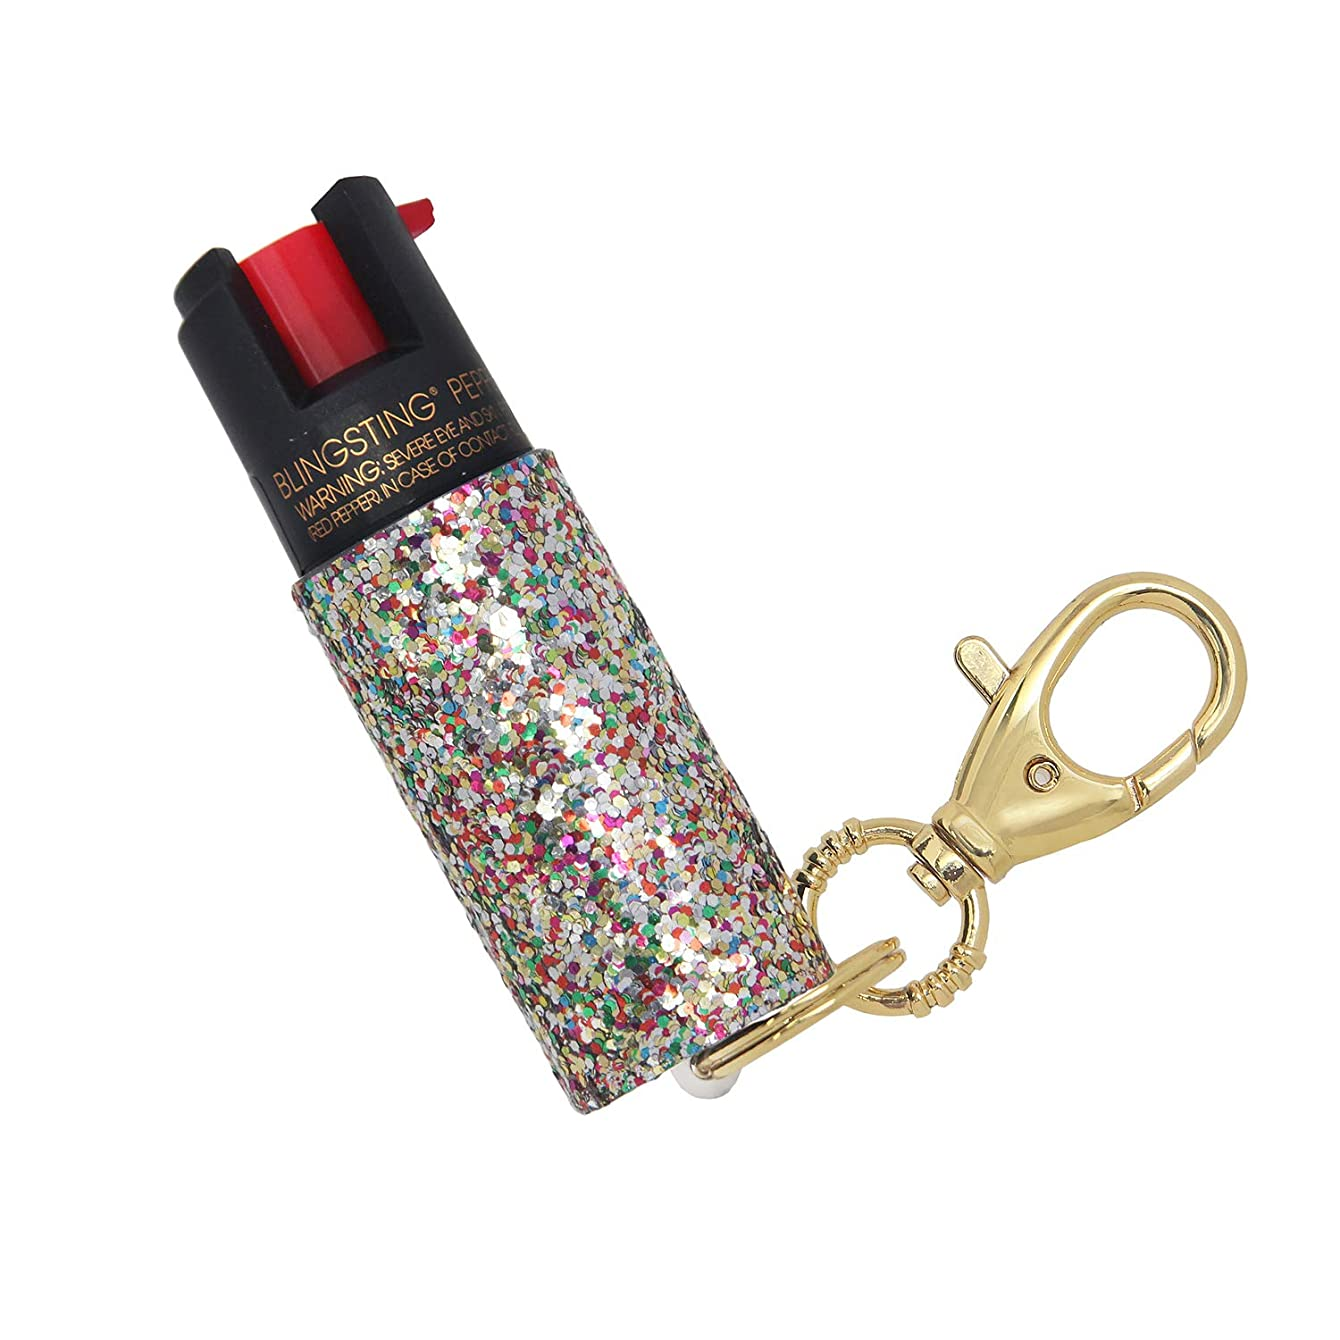 Pepper Spray Keychain for Women – Fashionable & Powerful, our 10% OC, No Gel Sprays Long Range and is Specifically Designed for Women, Safe, Accessible, Easy to Use, No Accidents, and Refillable